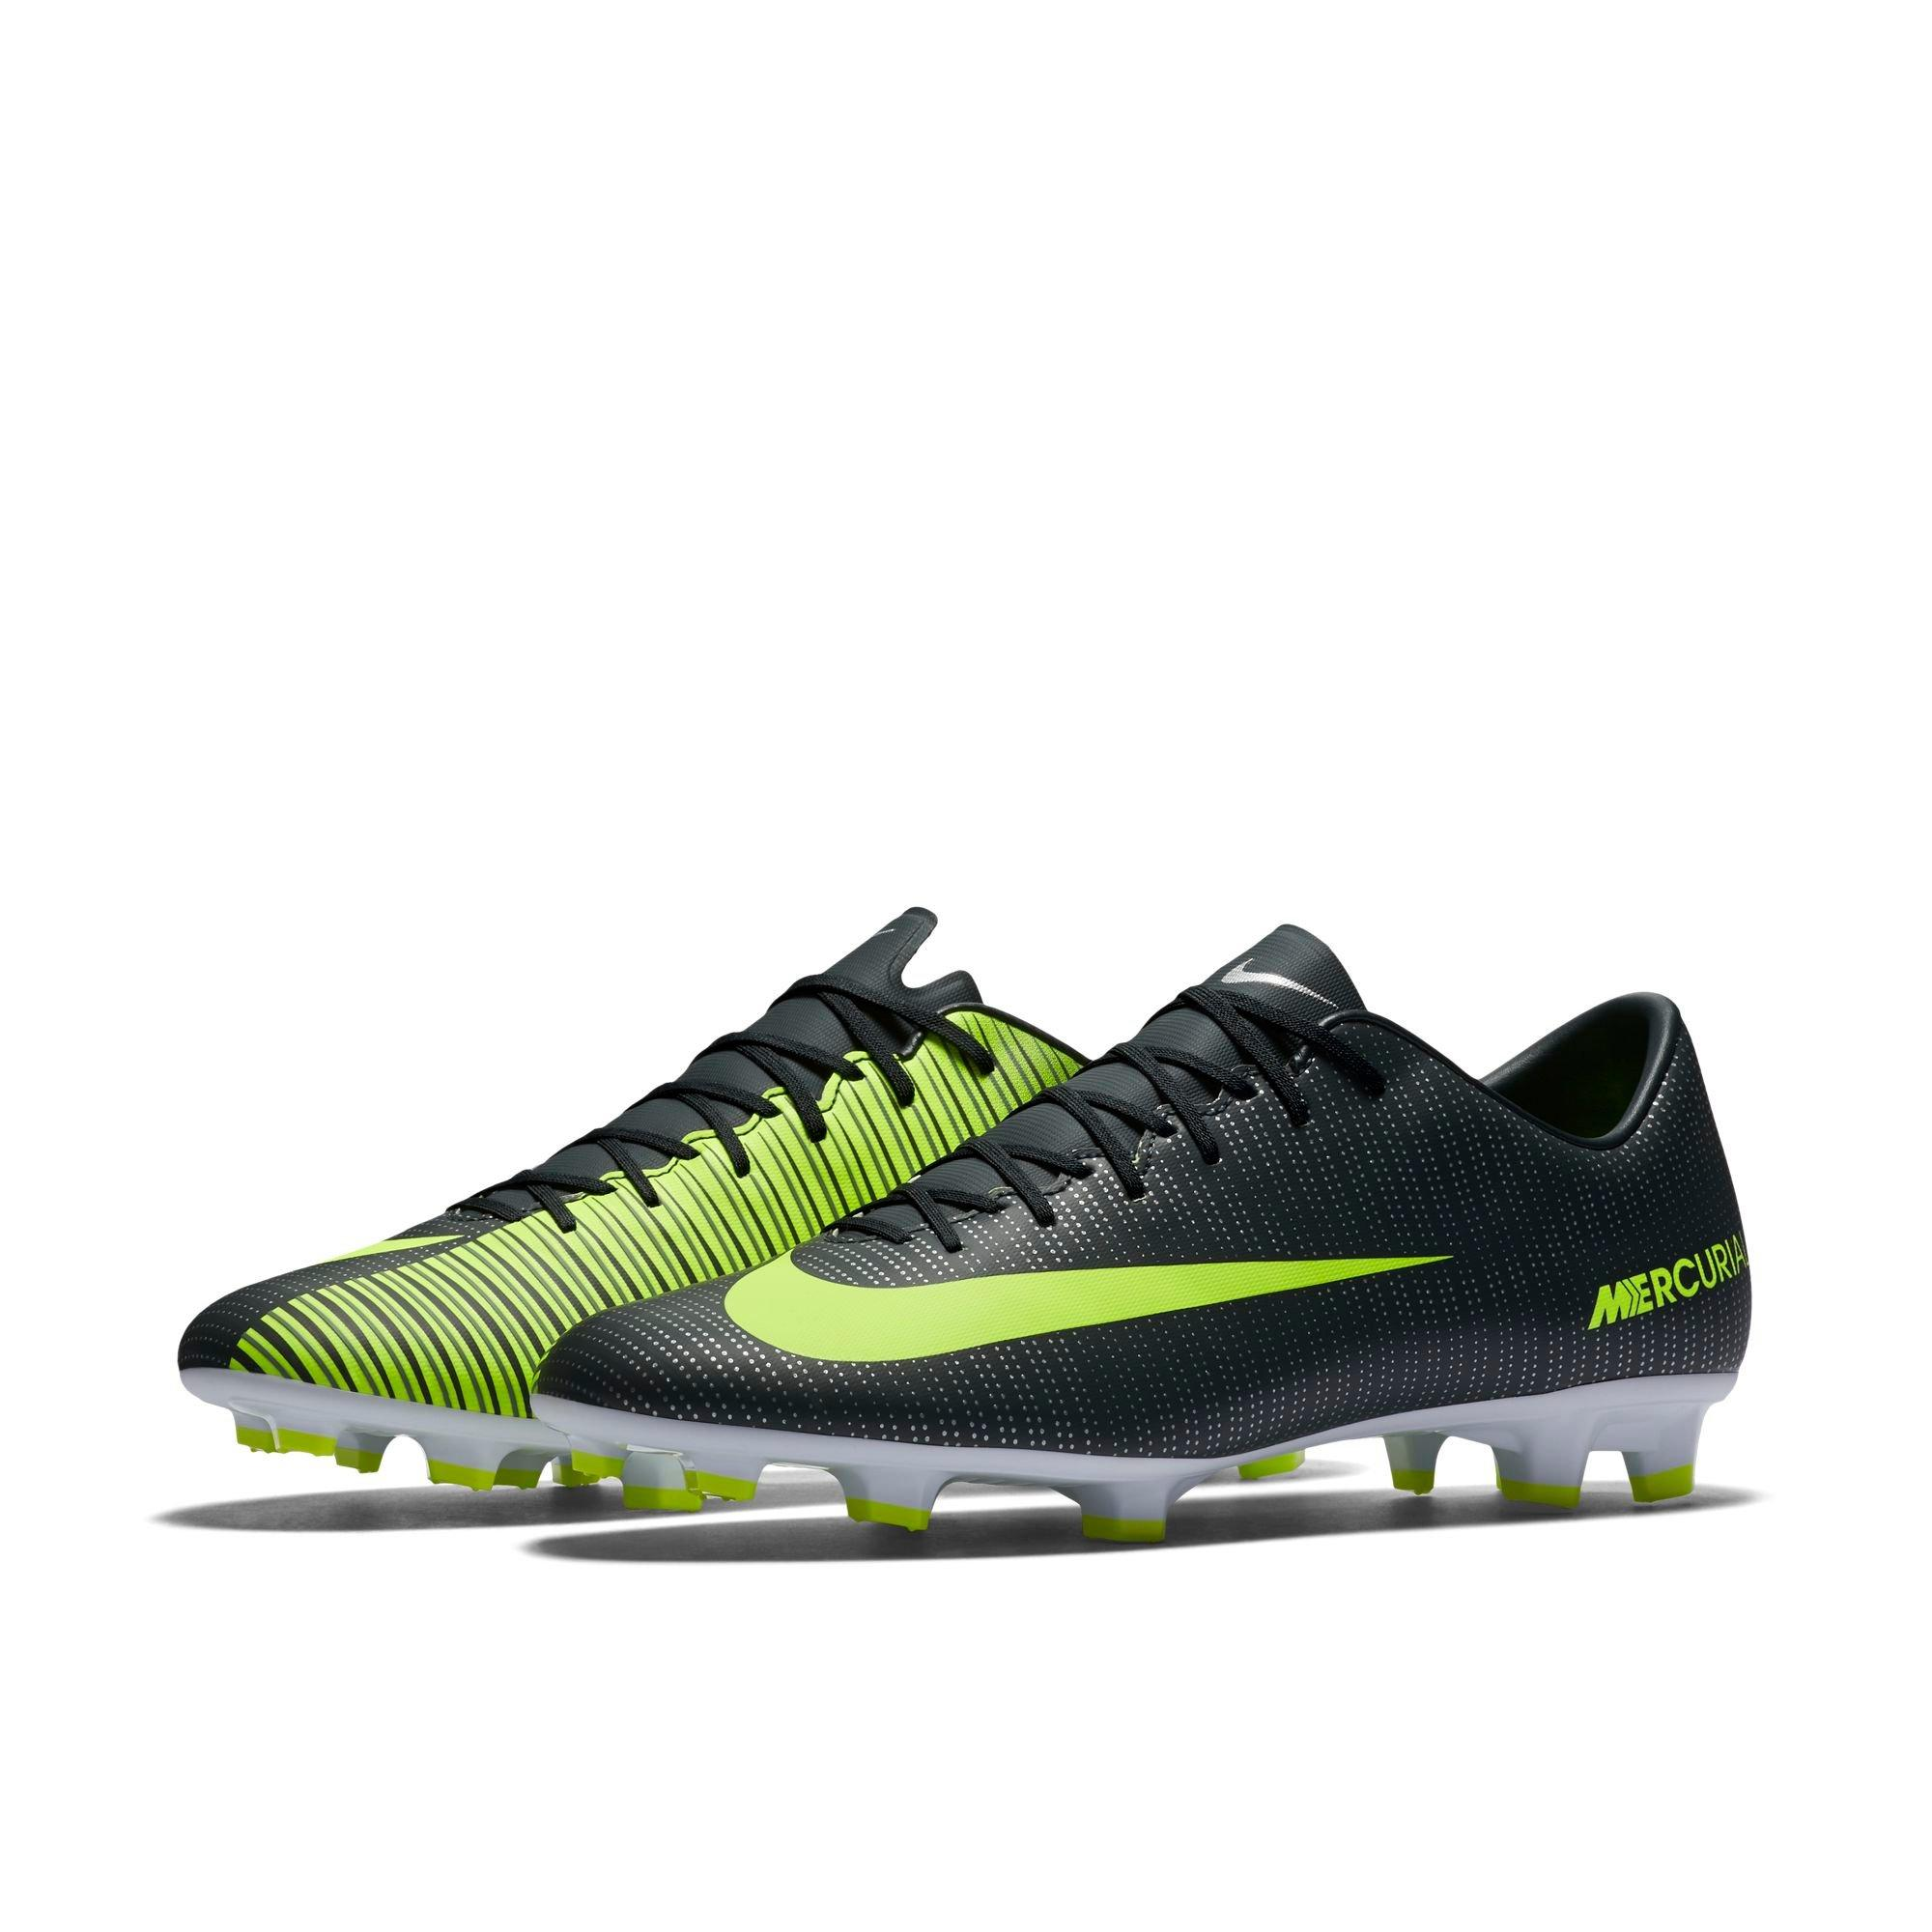 Nike Mercurial Victory VI CR7 FG Men\u0027s Soccer Cleat - Main Container Image 7